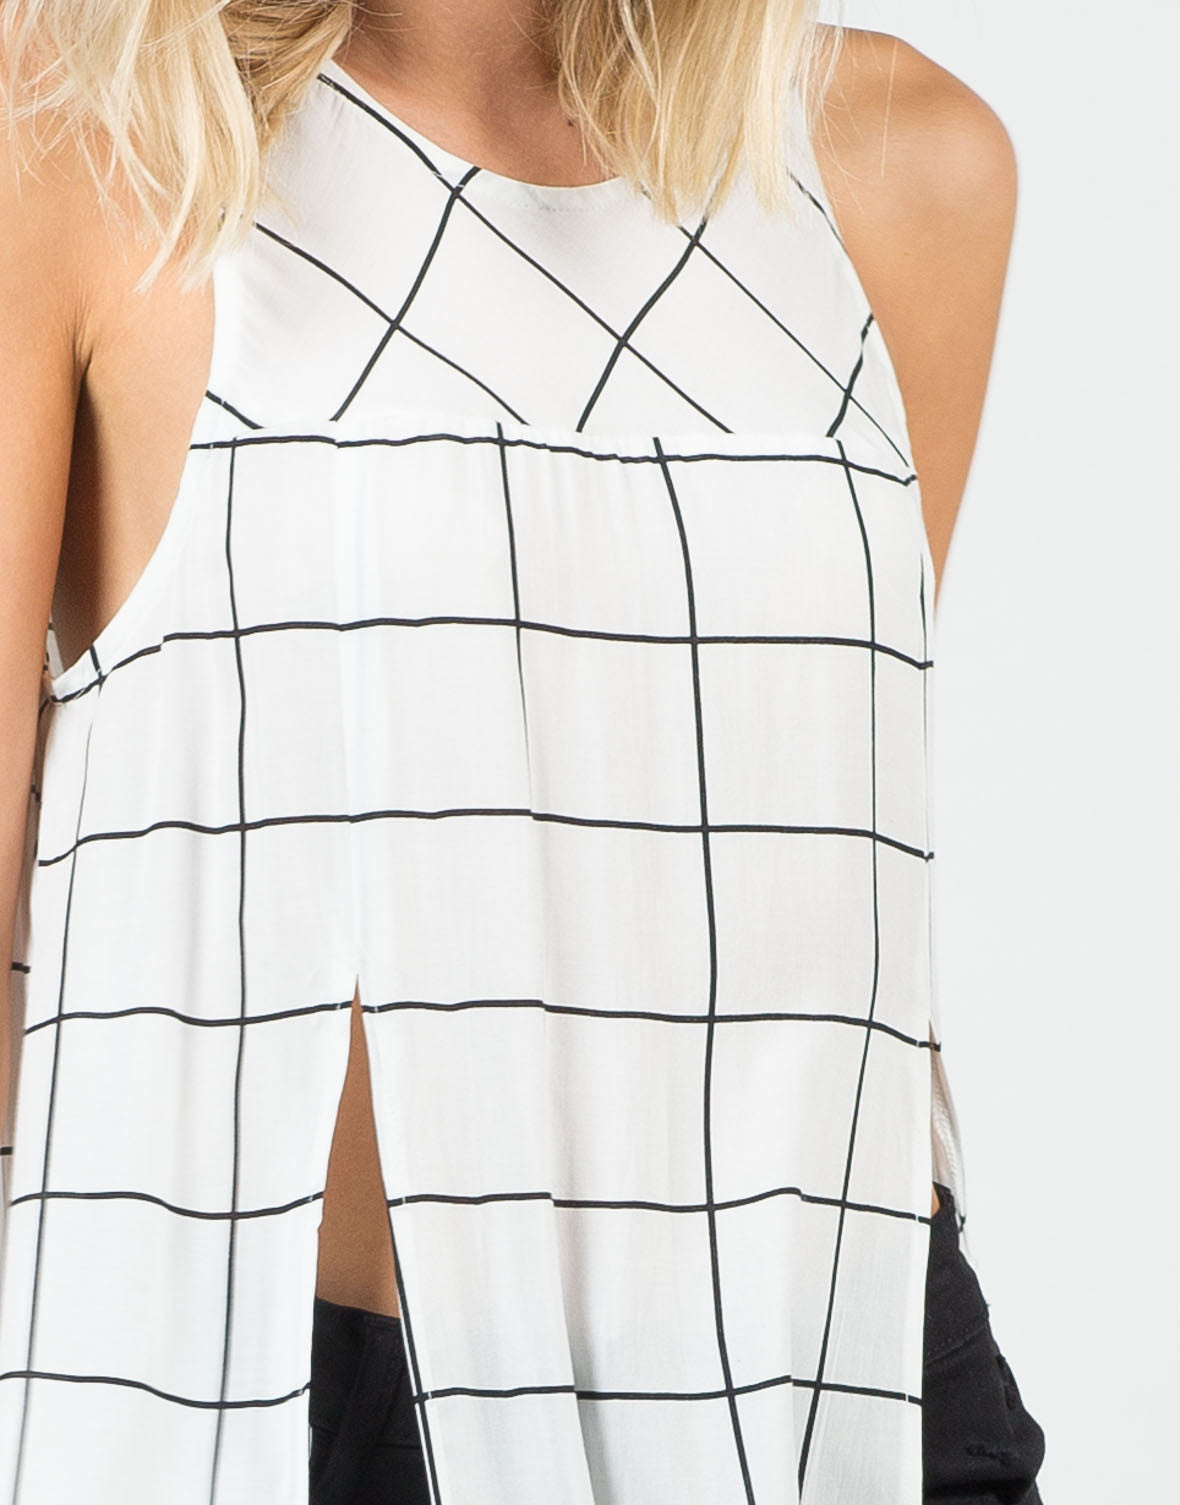 Detail of Gridline Shirt Dress